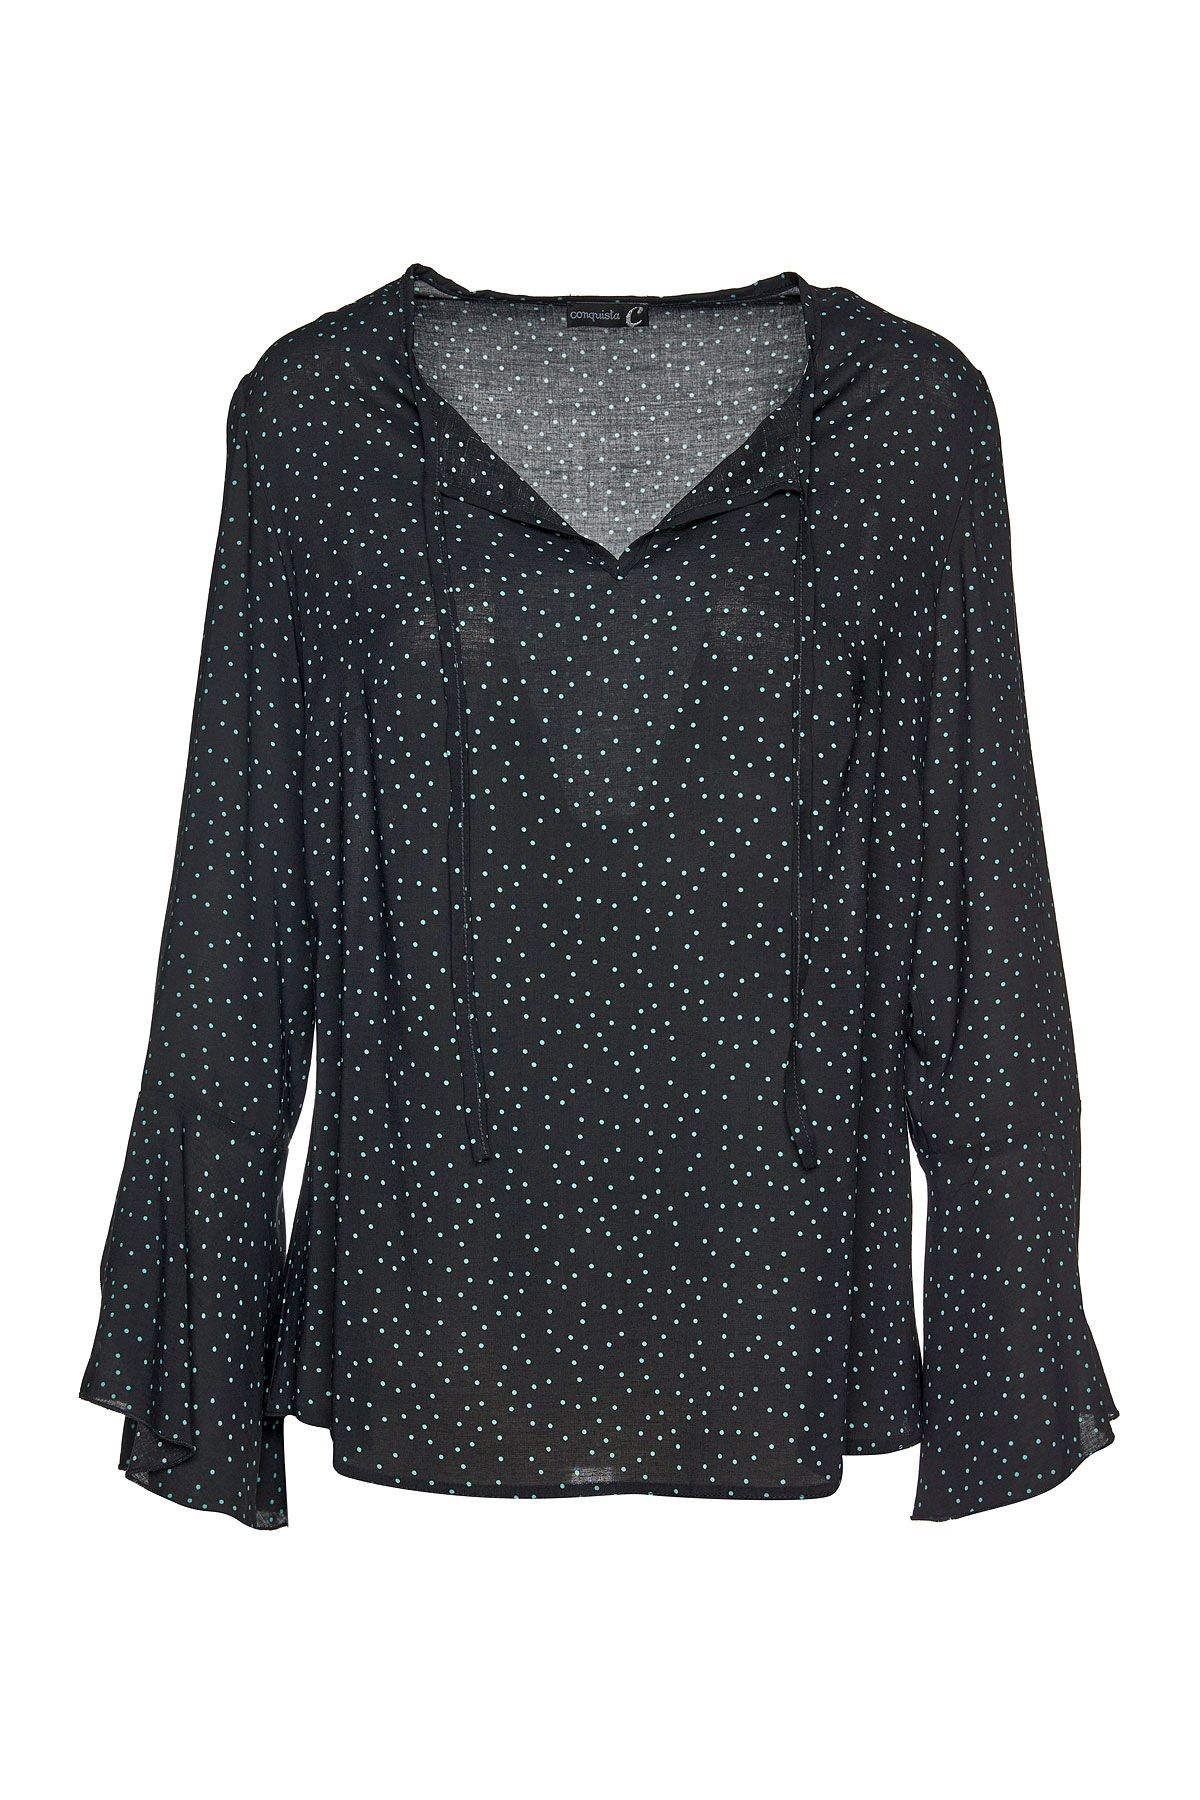 Loose Fitting Polka Dot Top with Ties